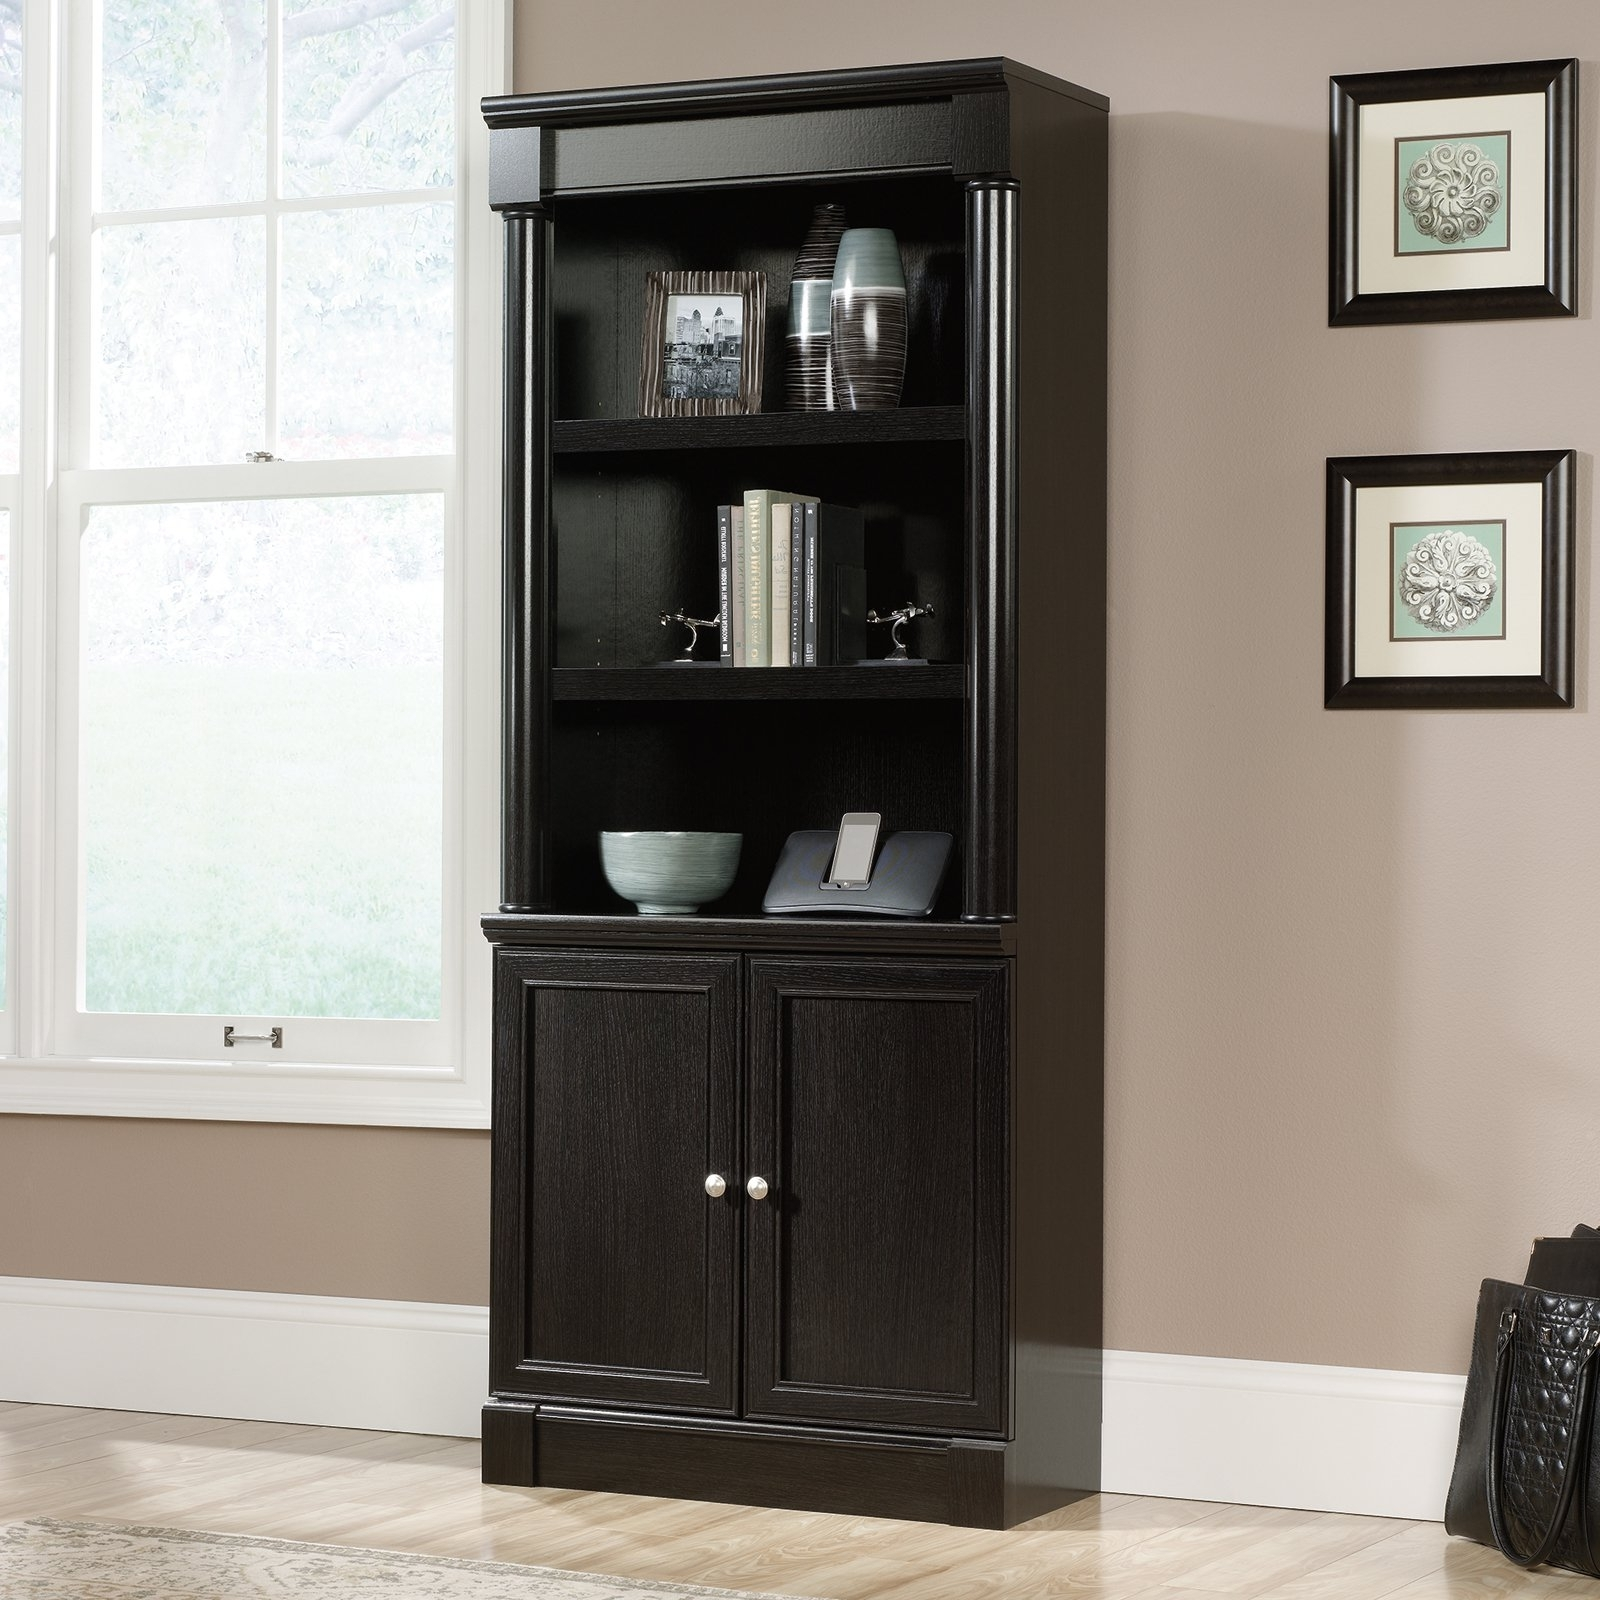 Hayneedle Throughout Black Bookcases With Doors (View 10 of 15)